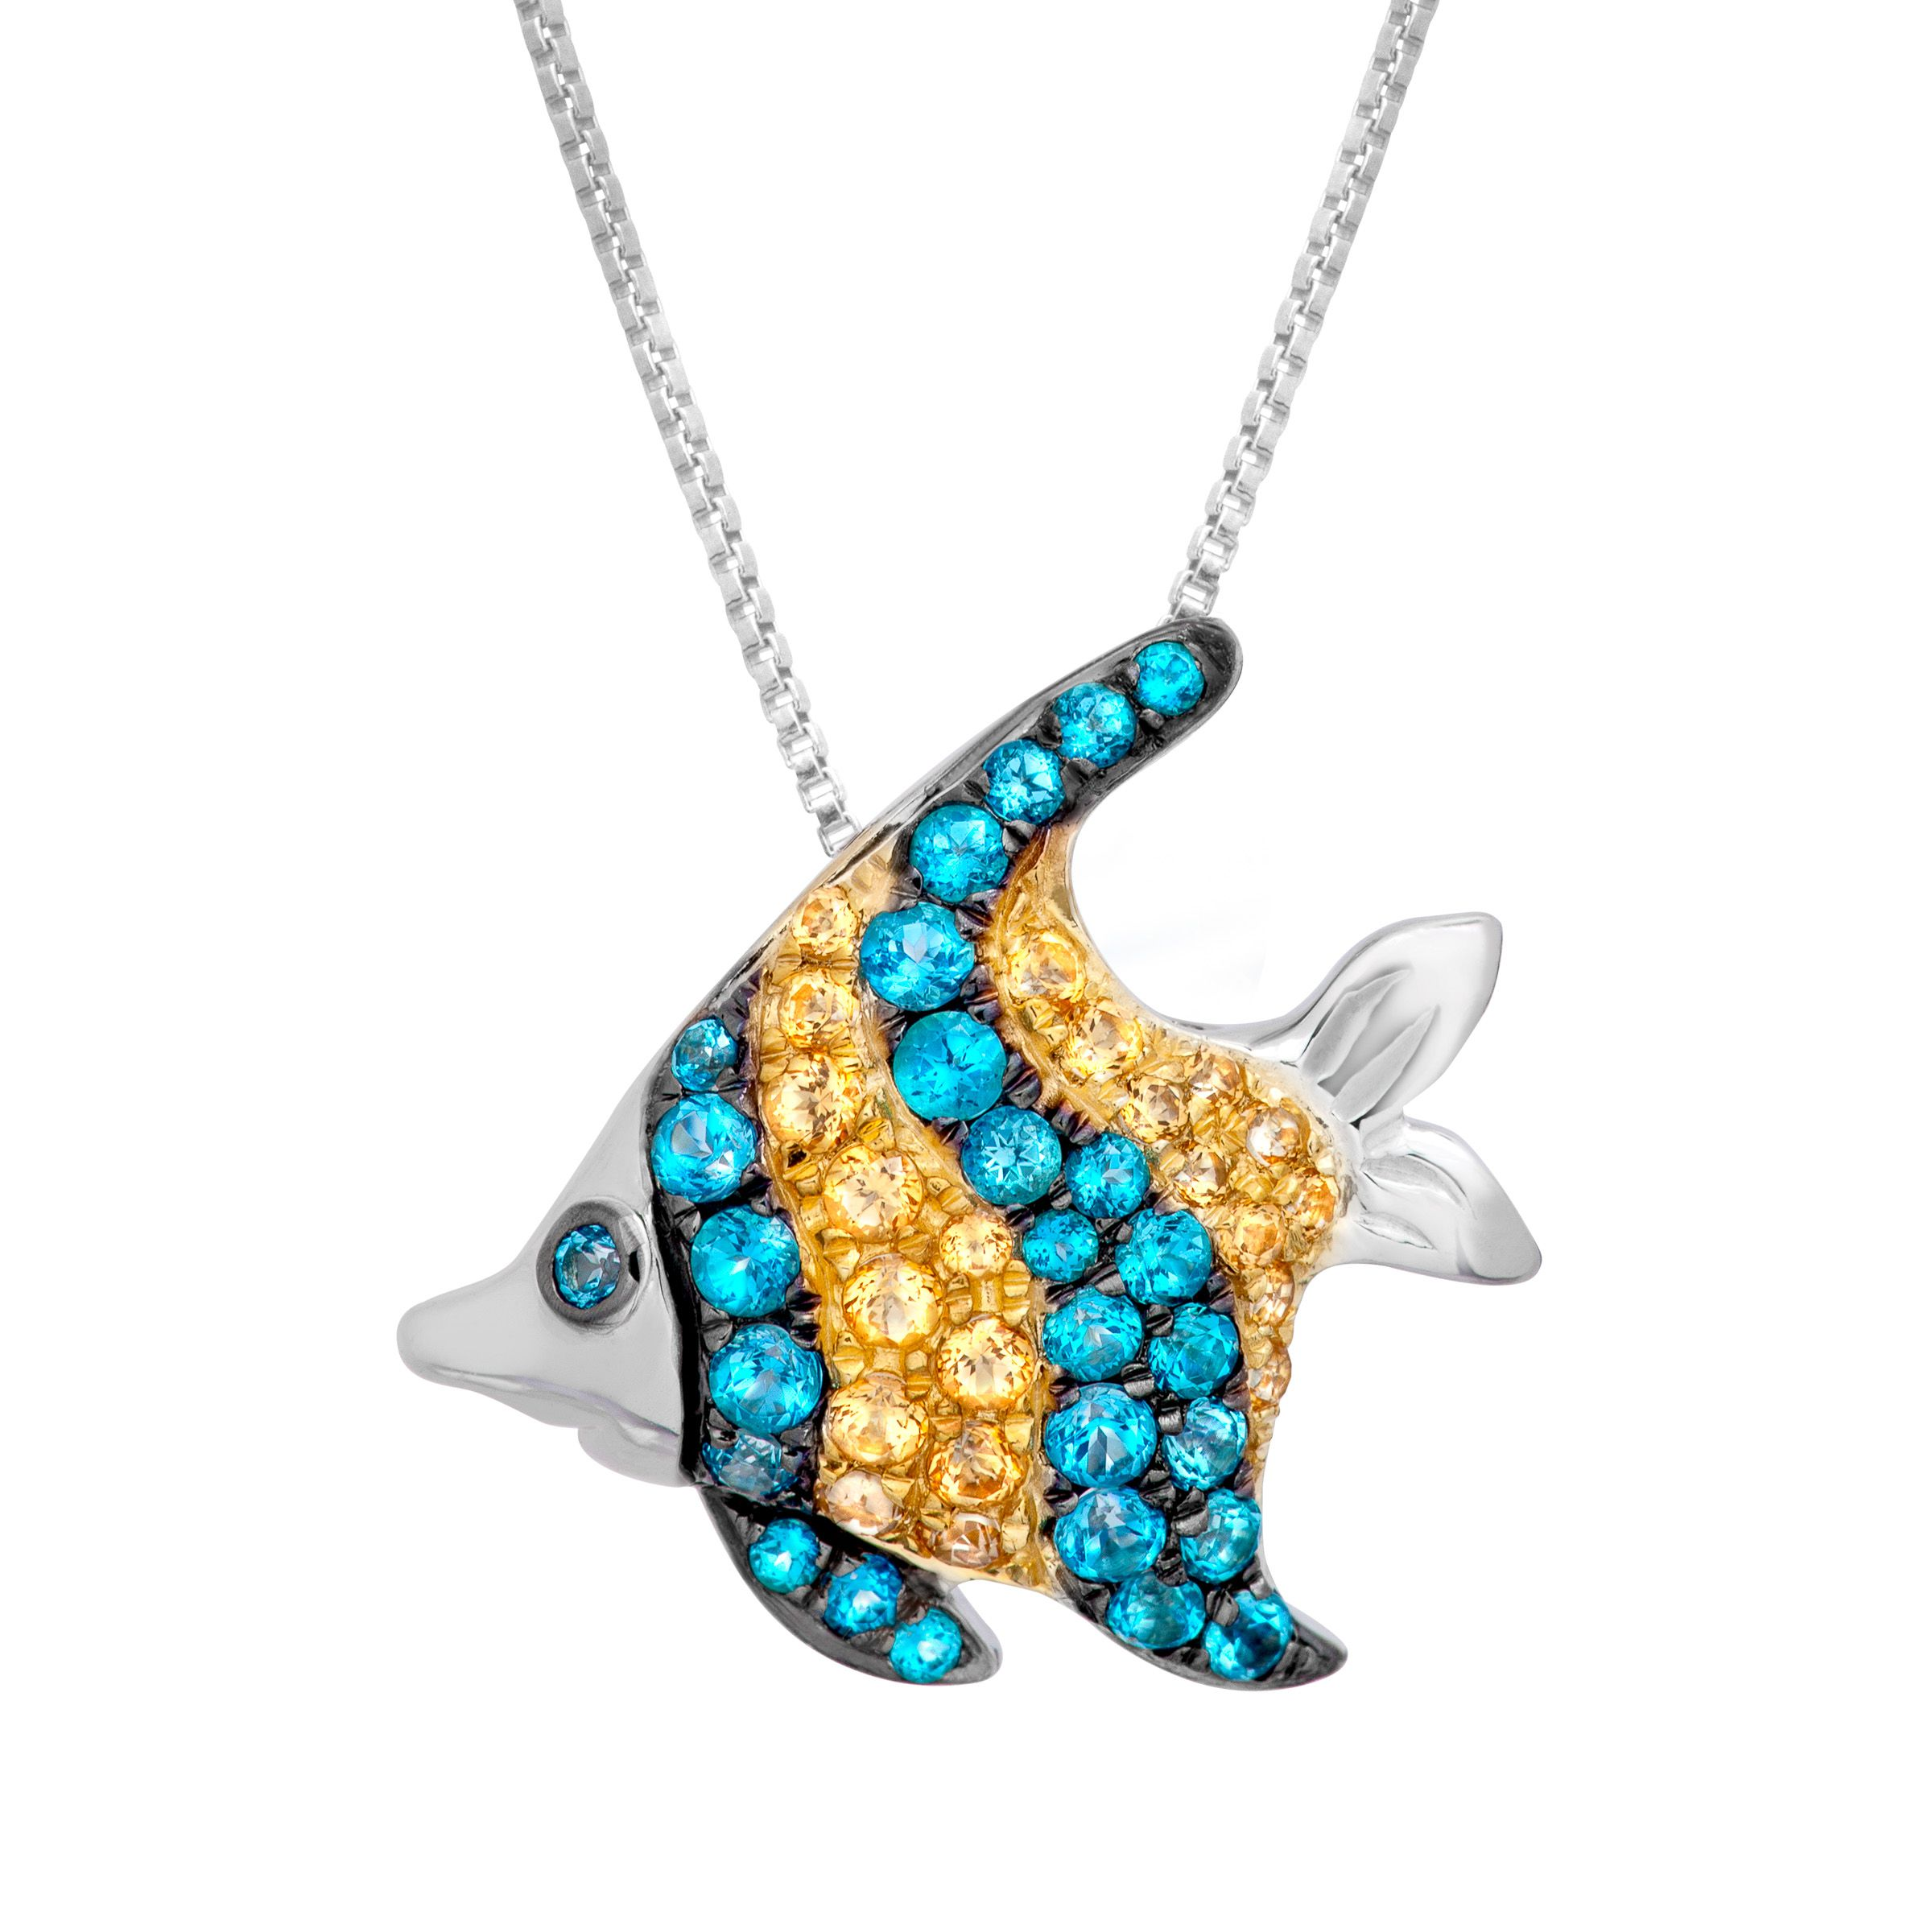 jewellery backbone products charm prev fish pendant dea fishpendant